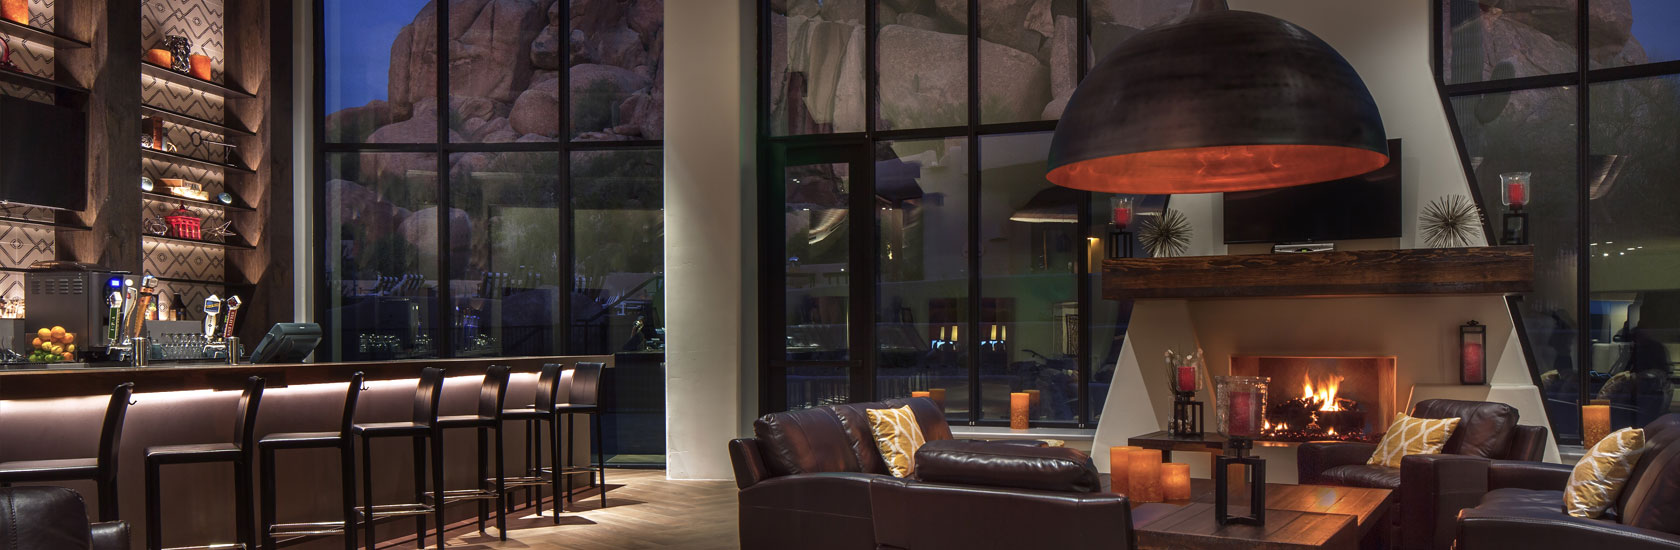 Discovery Lounge | Dining at the Boulders Resort & Spa | Scottsdale